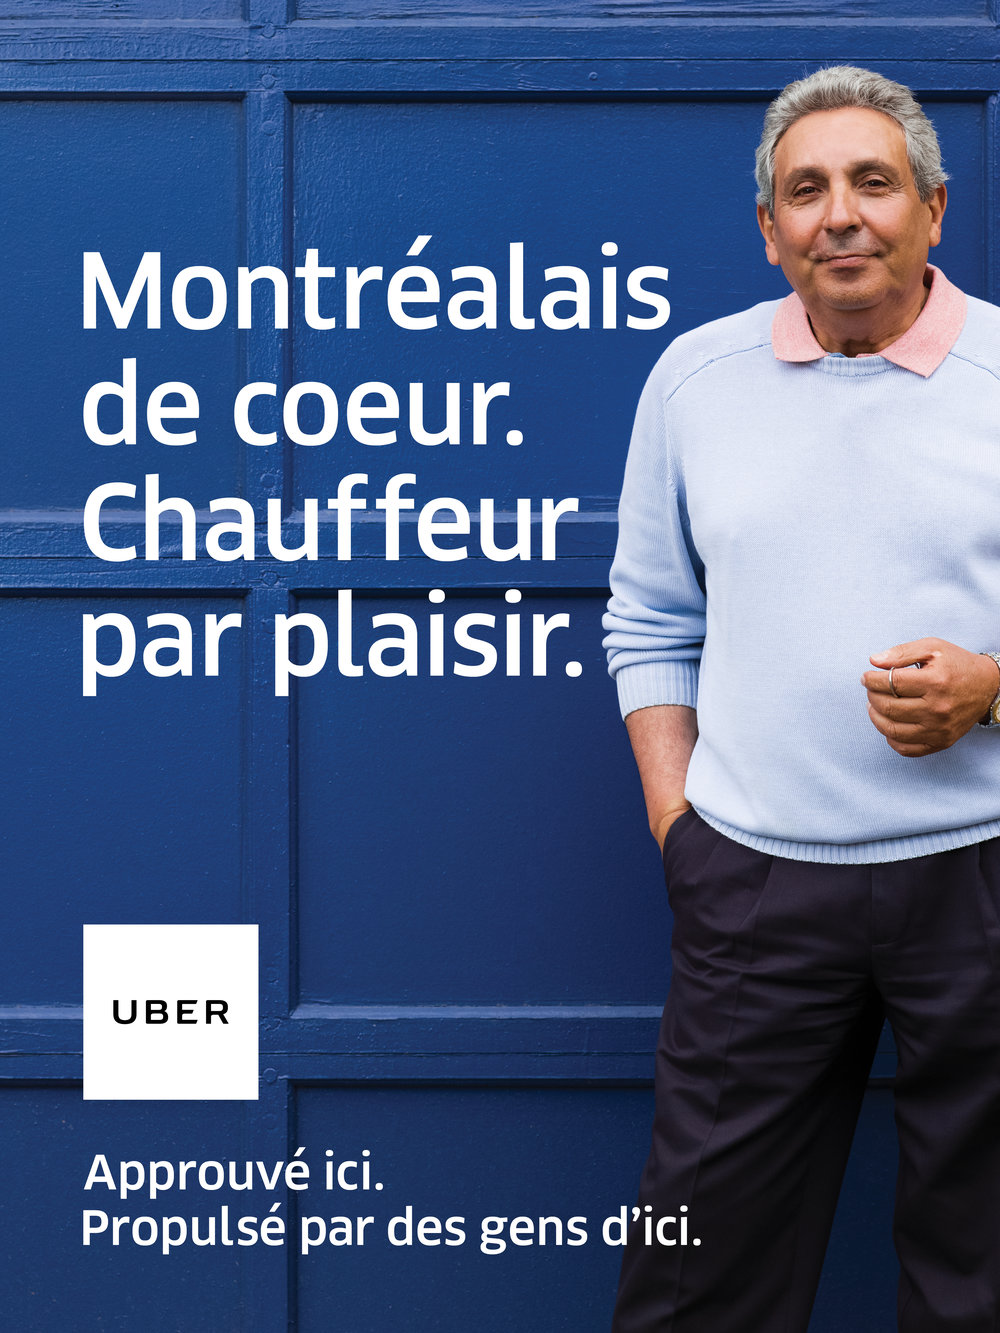 MTL_montreal-brand-campaign_OOH-vertical_12x16_r22 (1).jpg